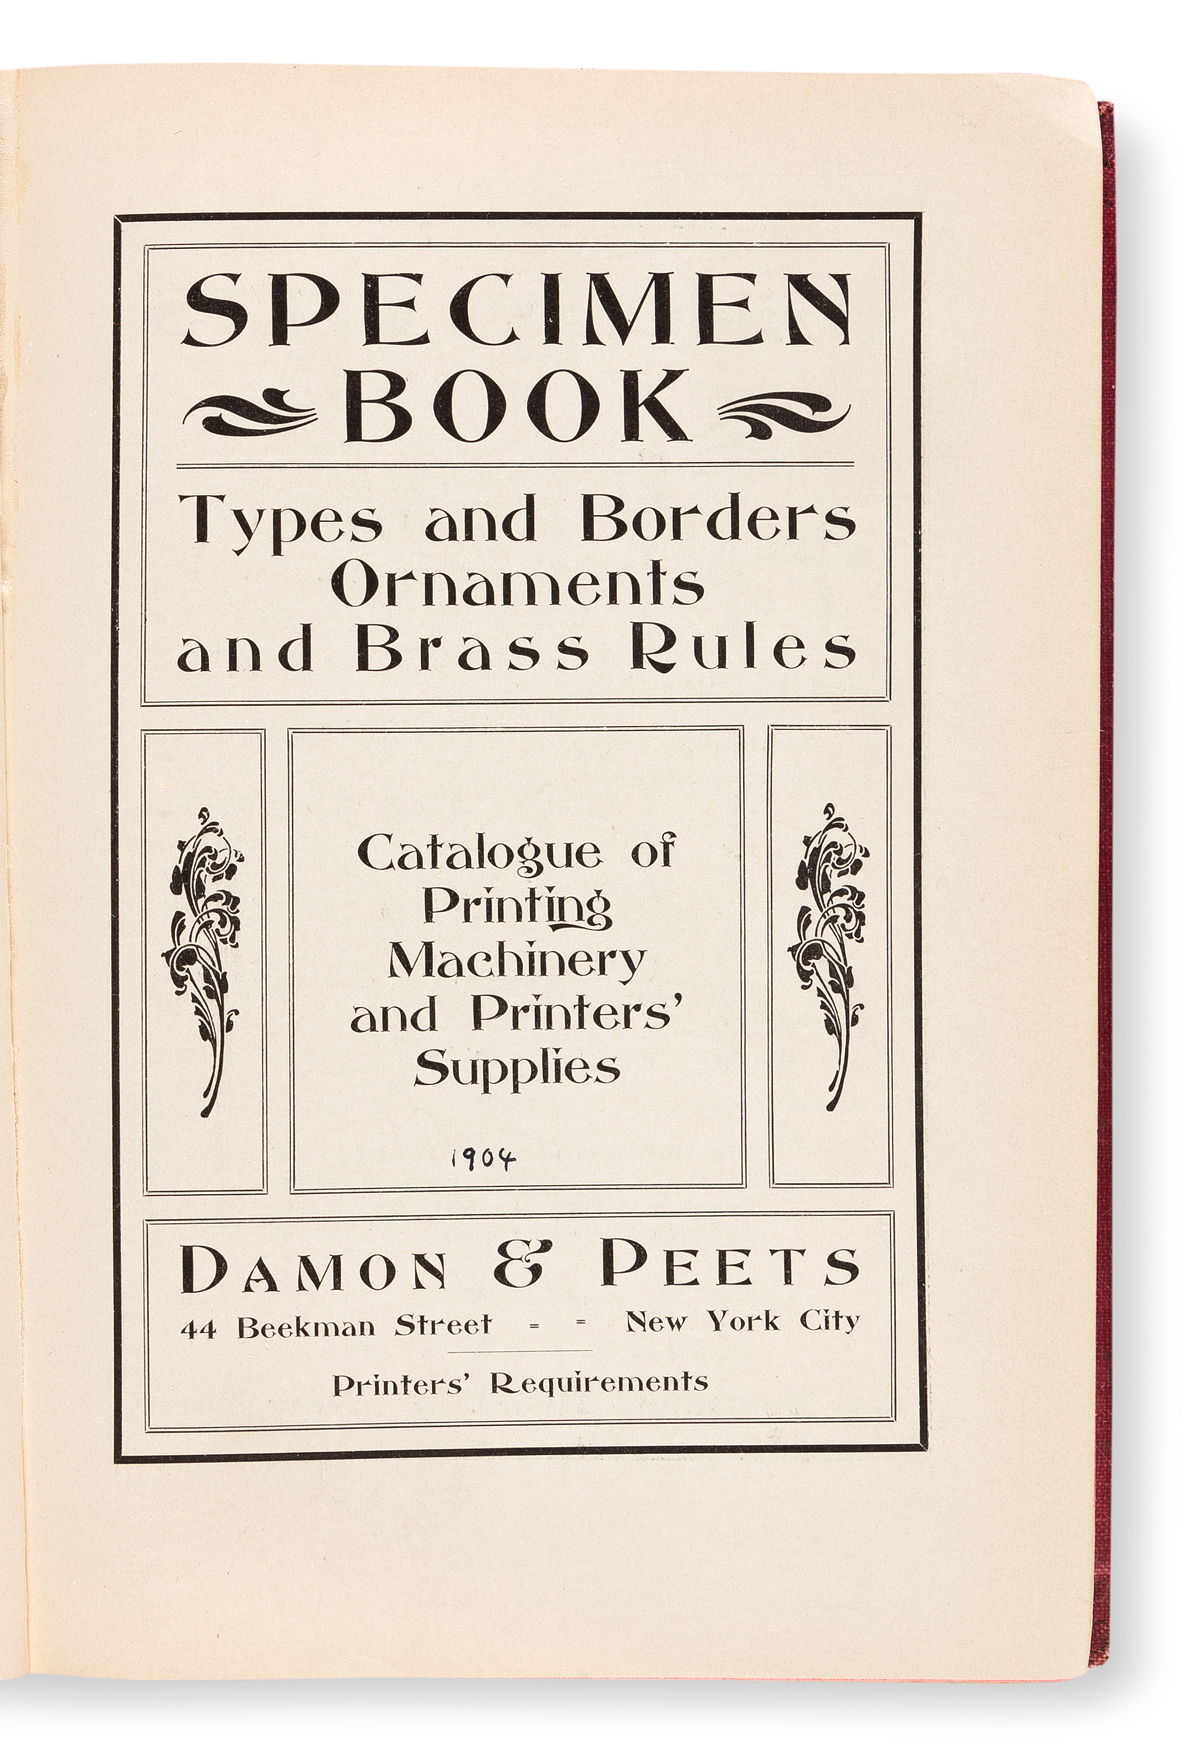 [SPECIMEN BOOK — DAMON & PEETS]. Types and Borders, Ornaments and Brass Rules, Catalogue of Printing Machinery and Printers' Supplies.